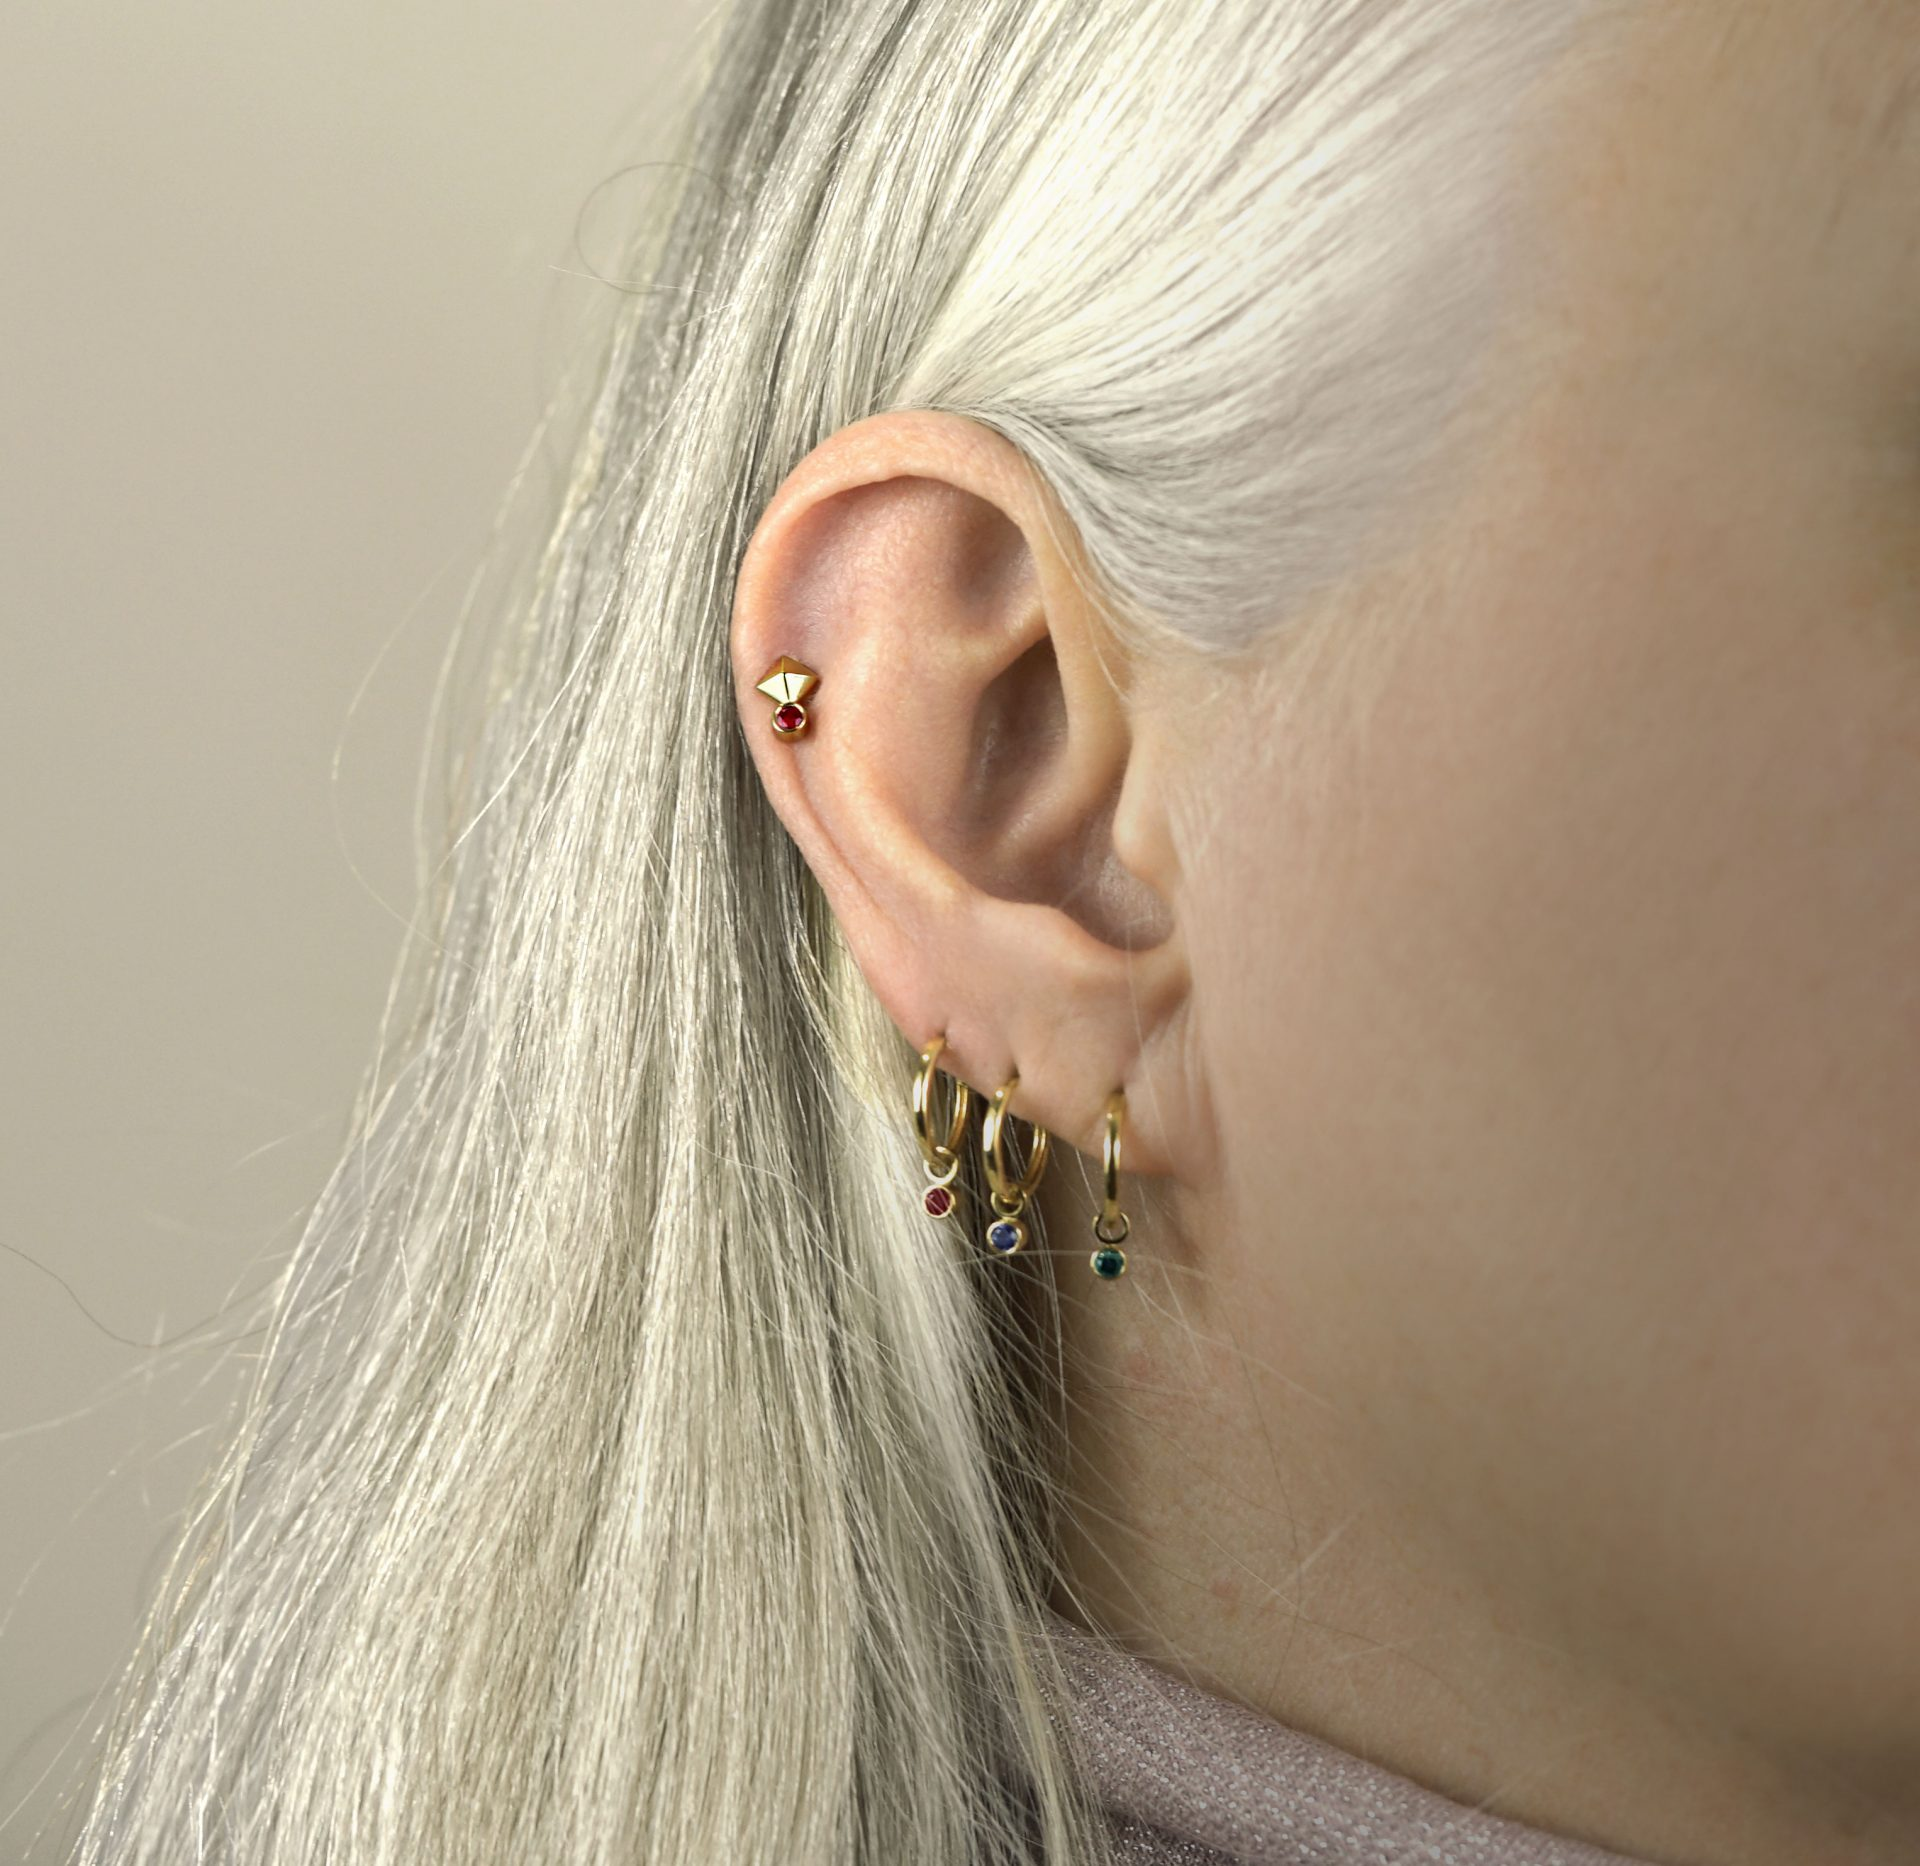 leo-cartilage-helix-18k-solid-gold-earring-zodiac-leo-lena-cohen-london